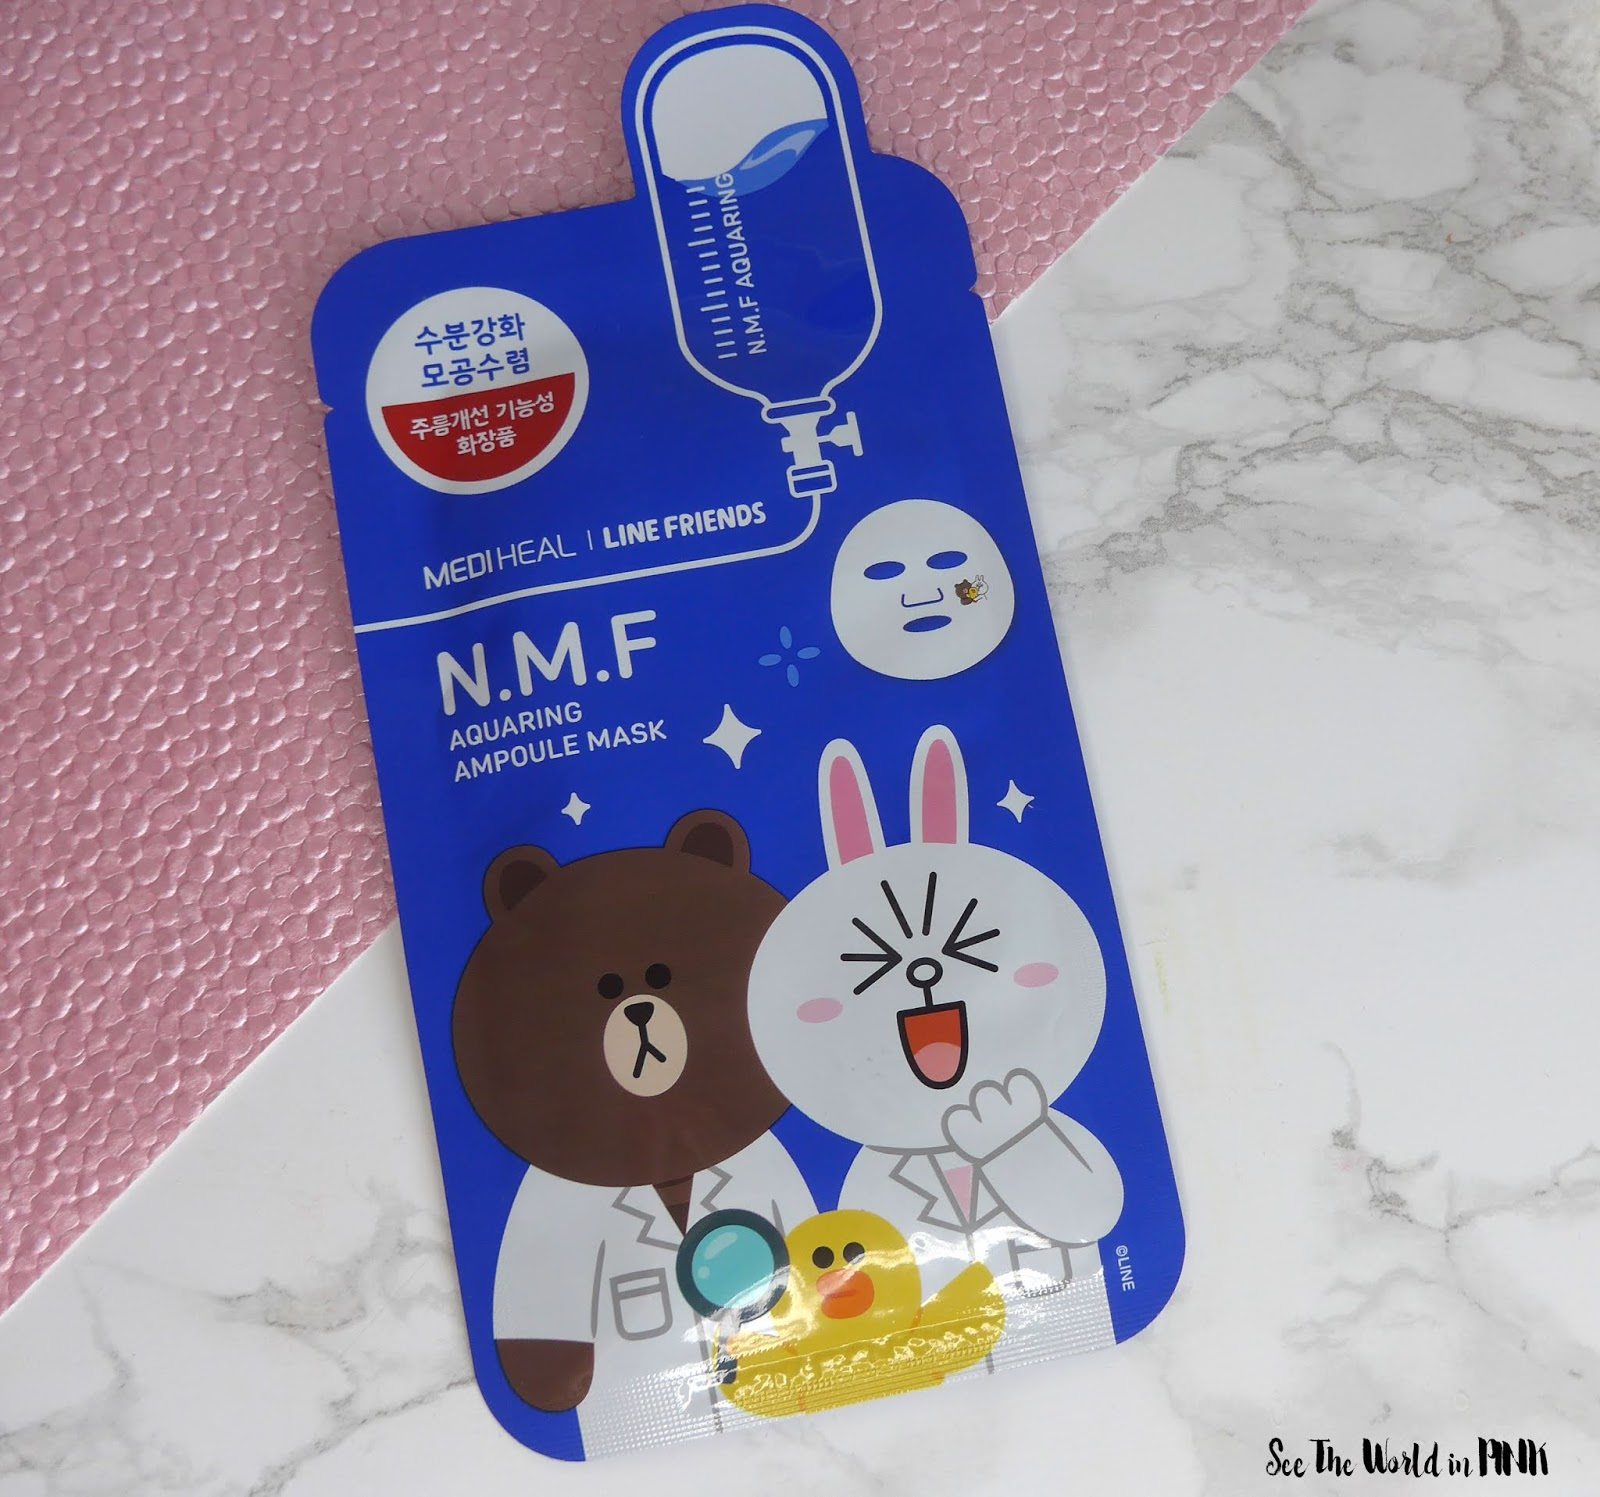 Skincare Sunday #CBBGetsSheetFaced Mediheal Line Friends N.M.F. mask